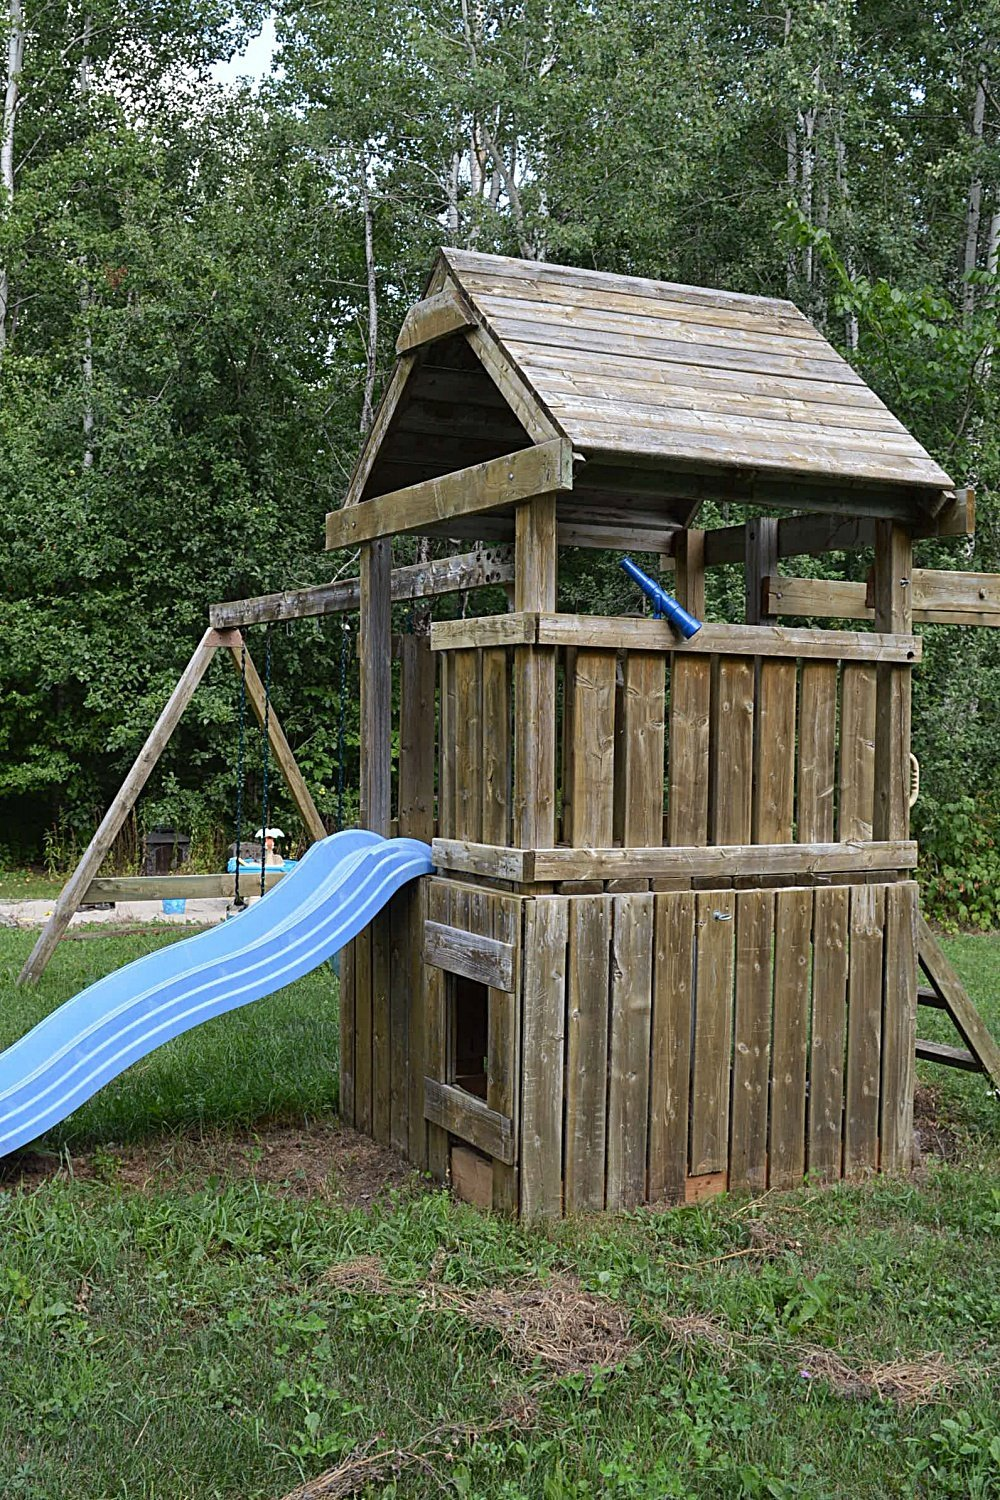 outdoor play structure makeover using semi-transparent stain